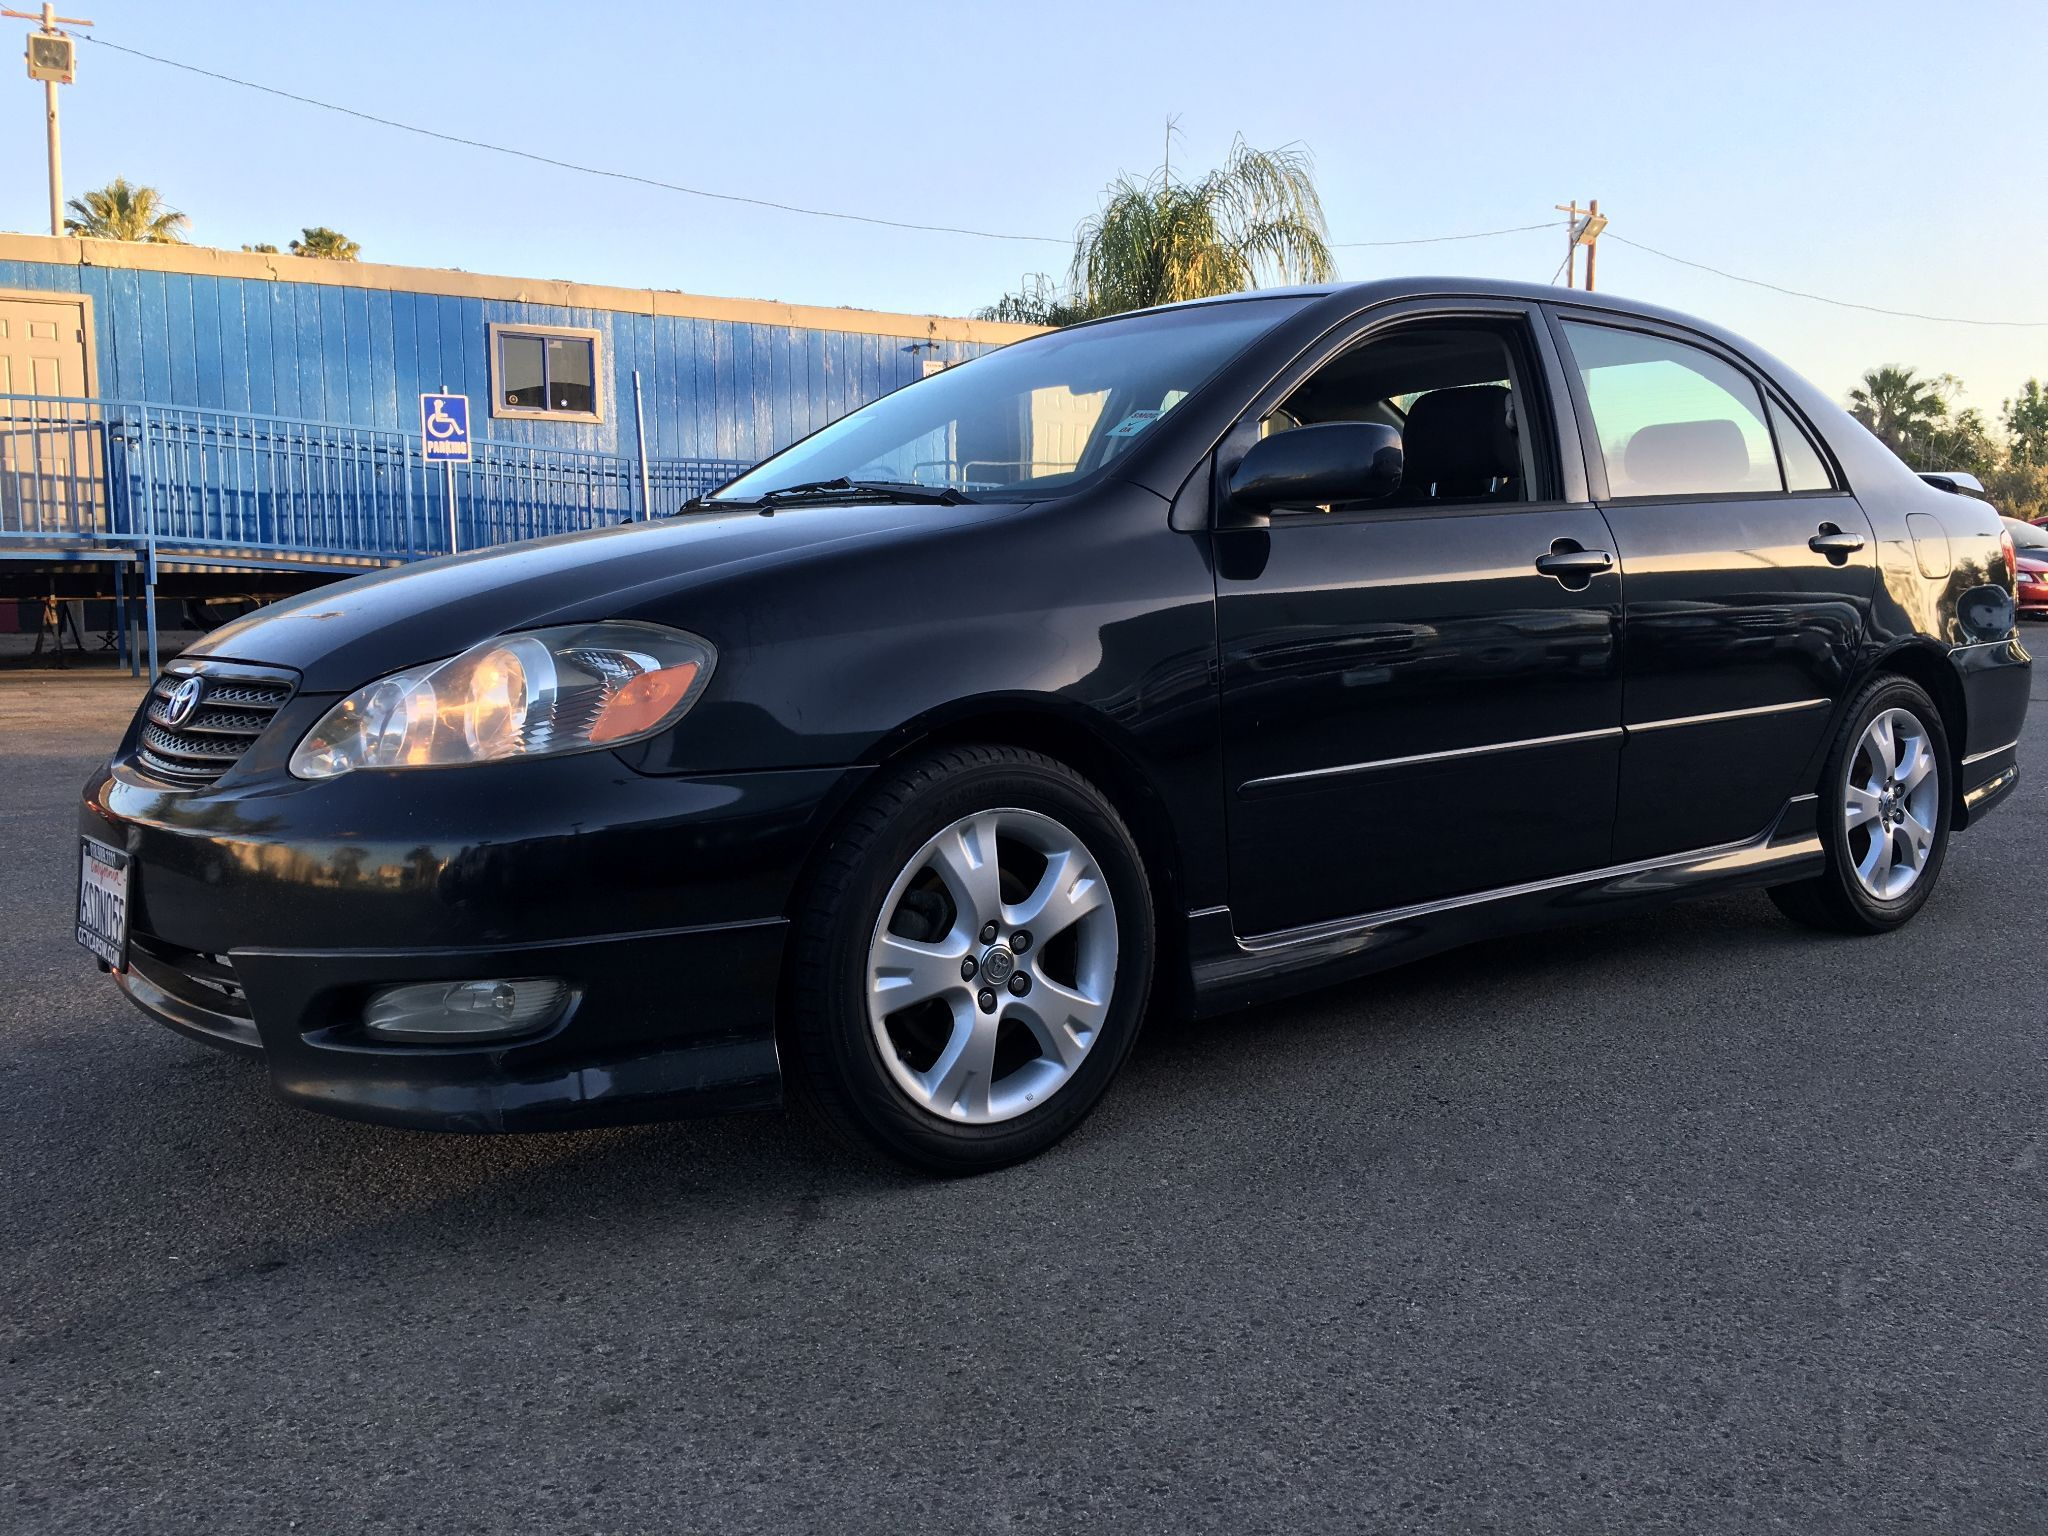 2005 Toyota Corolla Xrs >> Used 2005 Toyota Corolla Xrs At City Cars Warehouse Inc